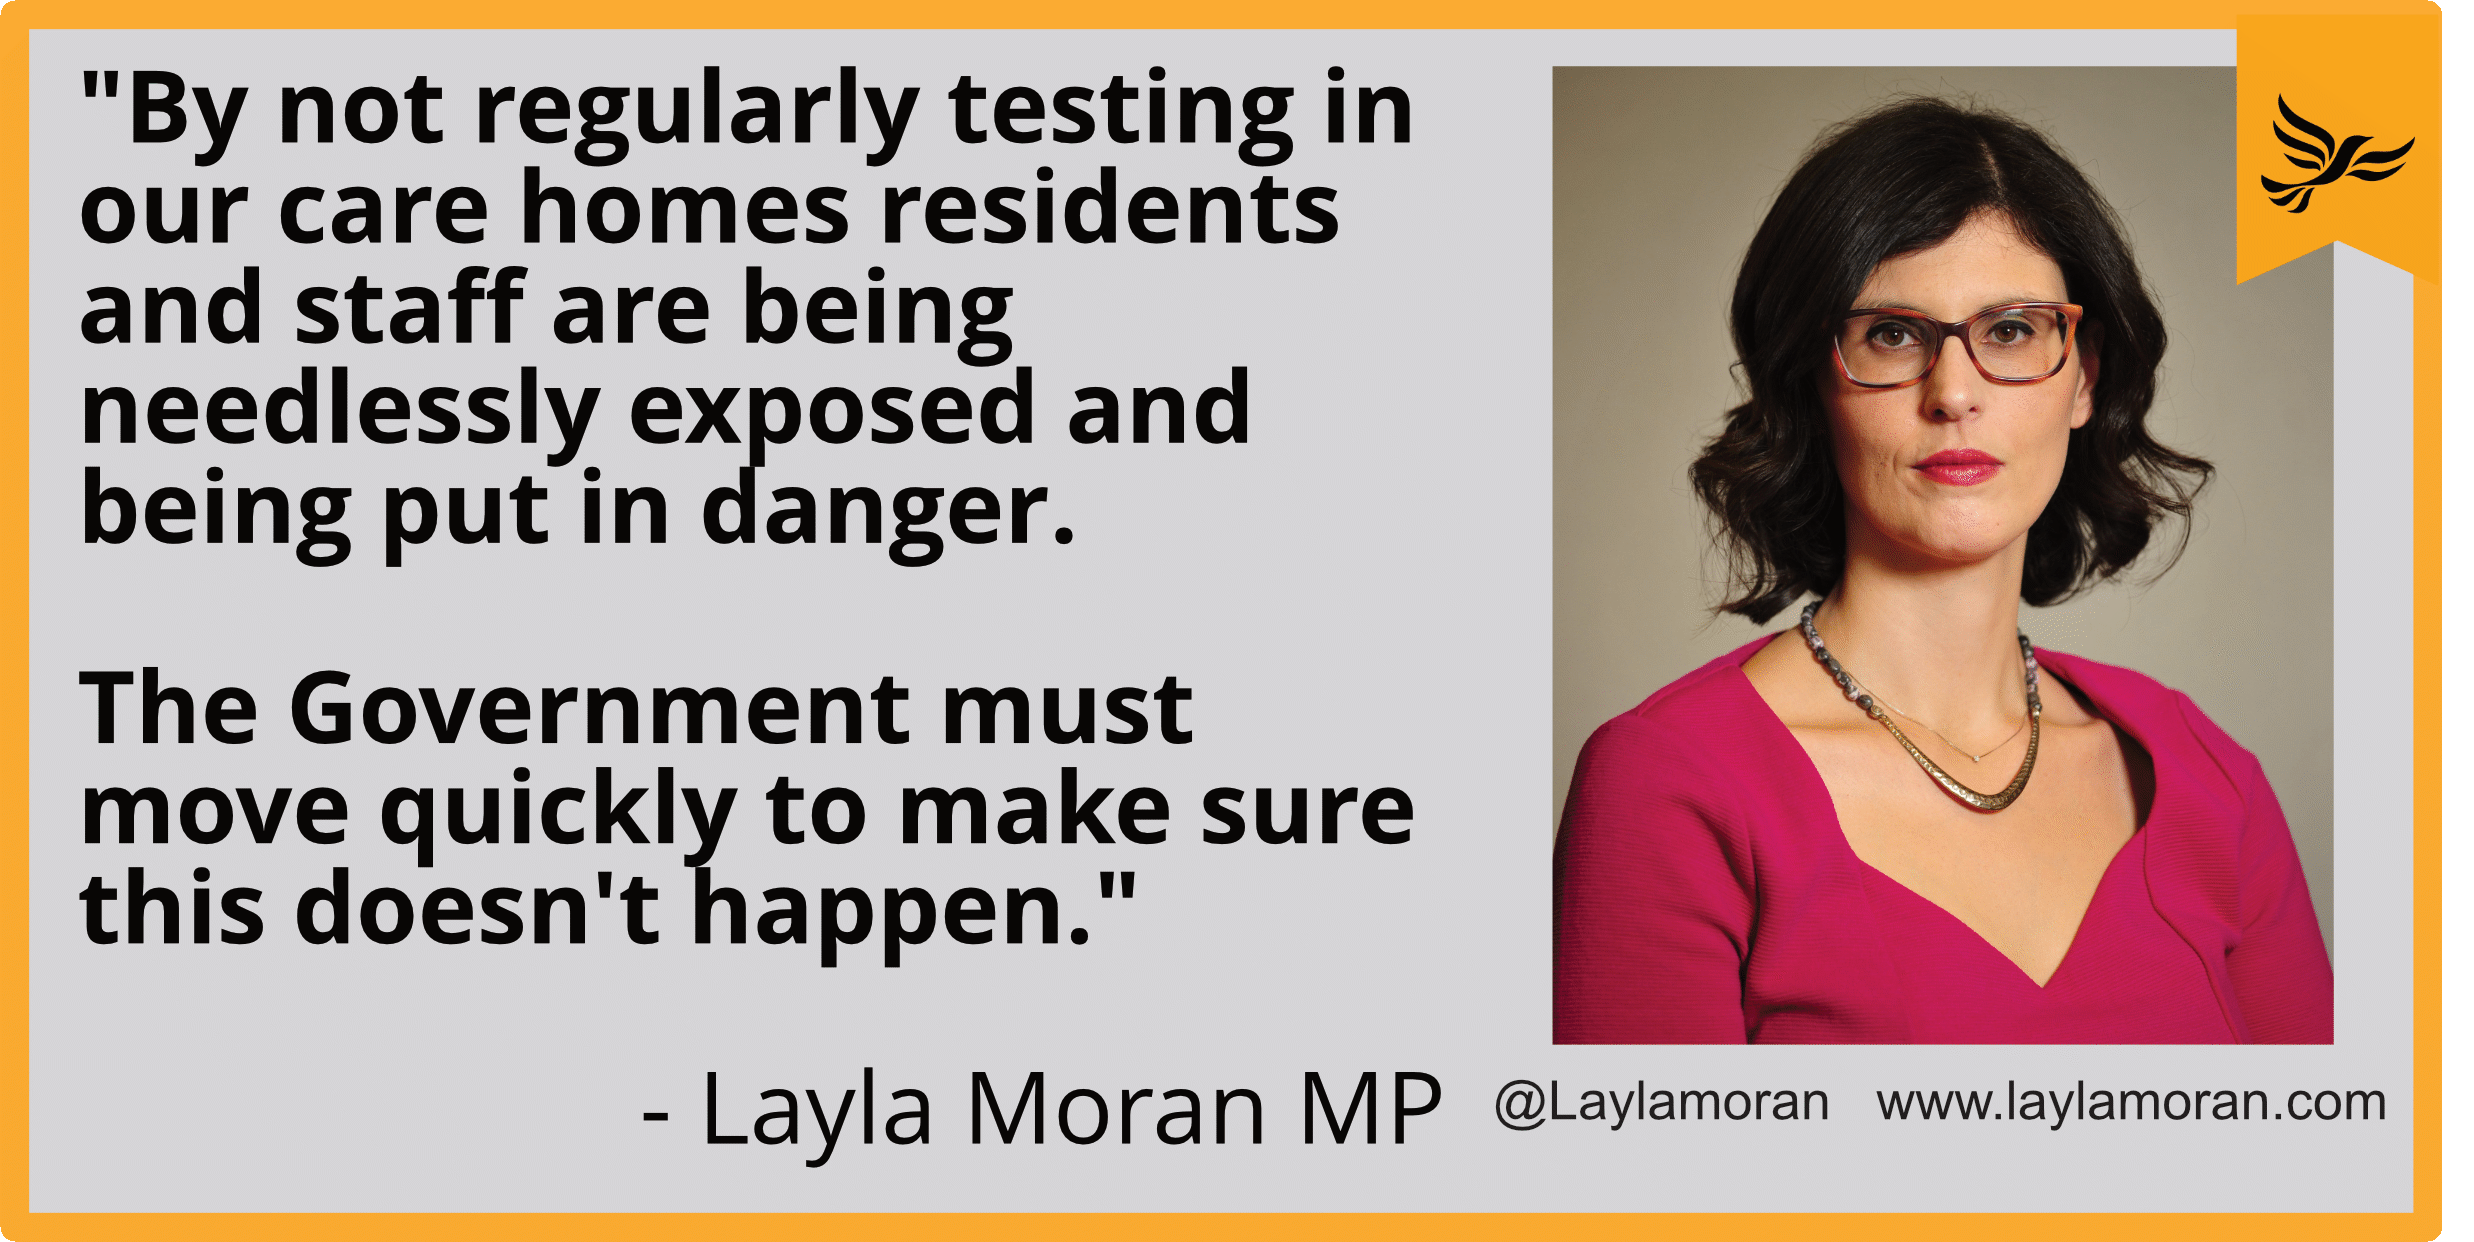 """By not regularly testing in our care homes residents and staff are being needlessly exposed and being put in danger. The Government must move quickly to make sure this doesn't happen."""